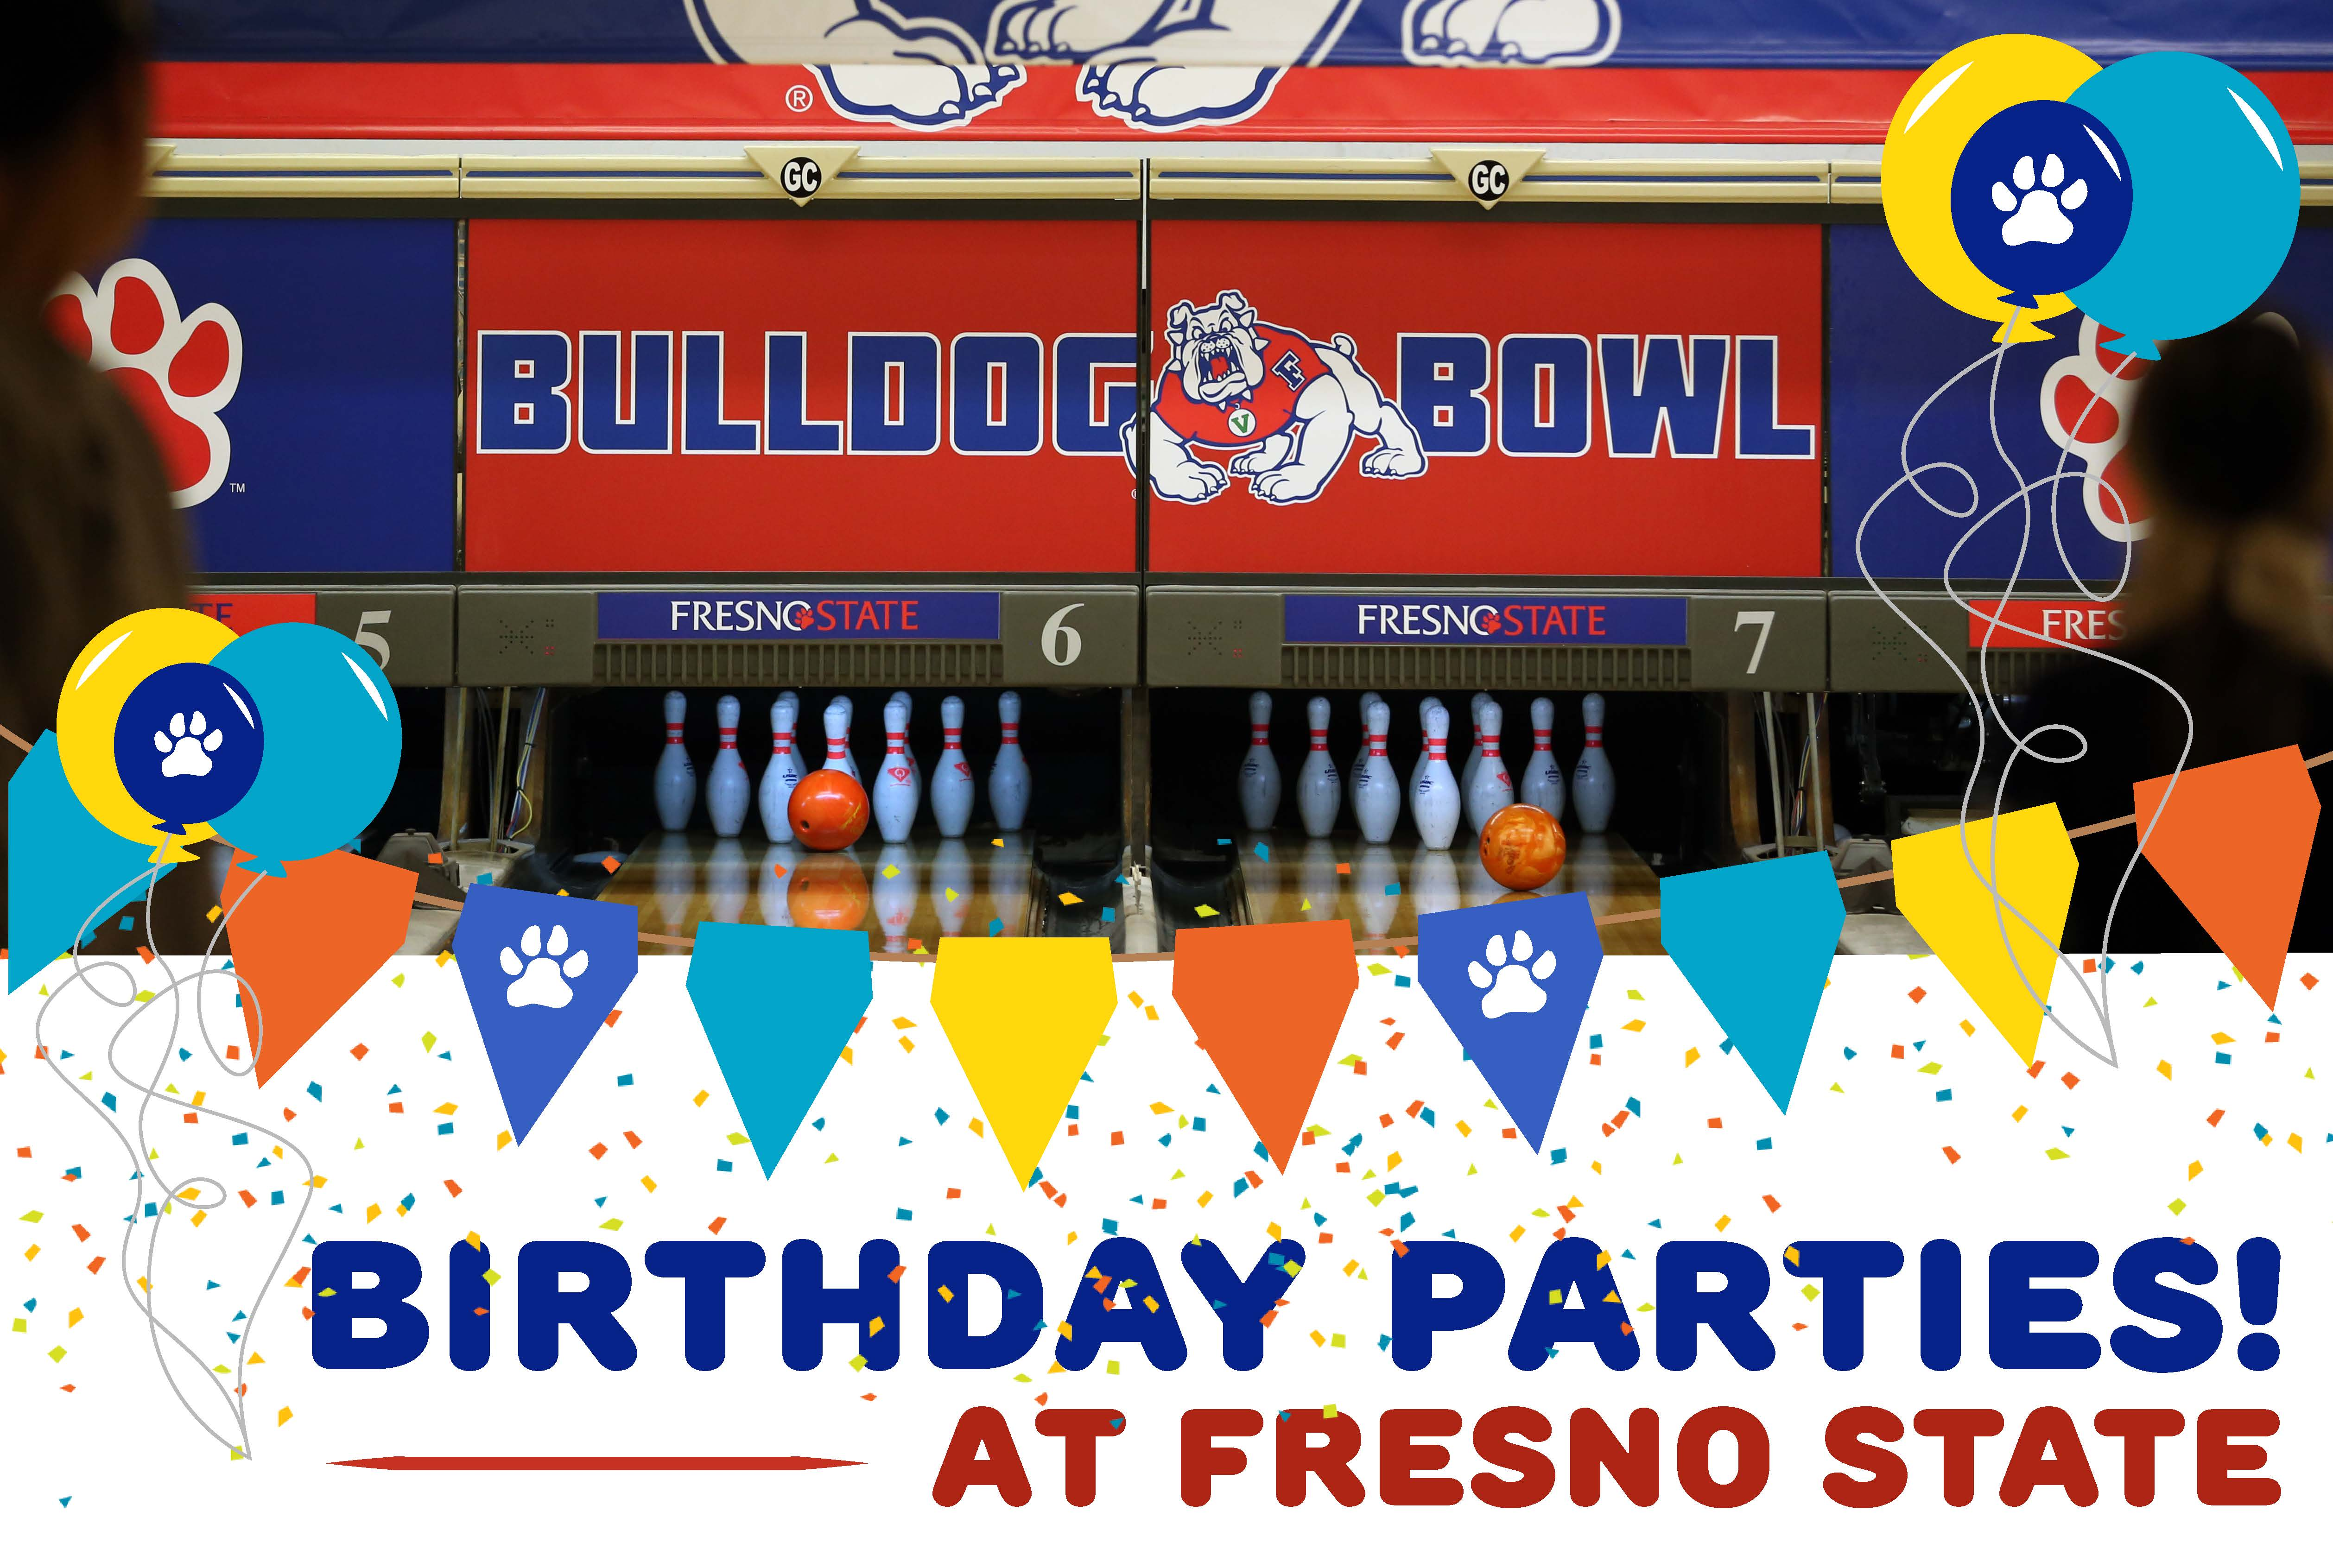 Birthday parties at the Bulldog Bowl